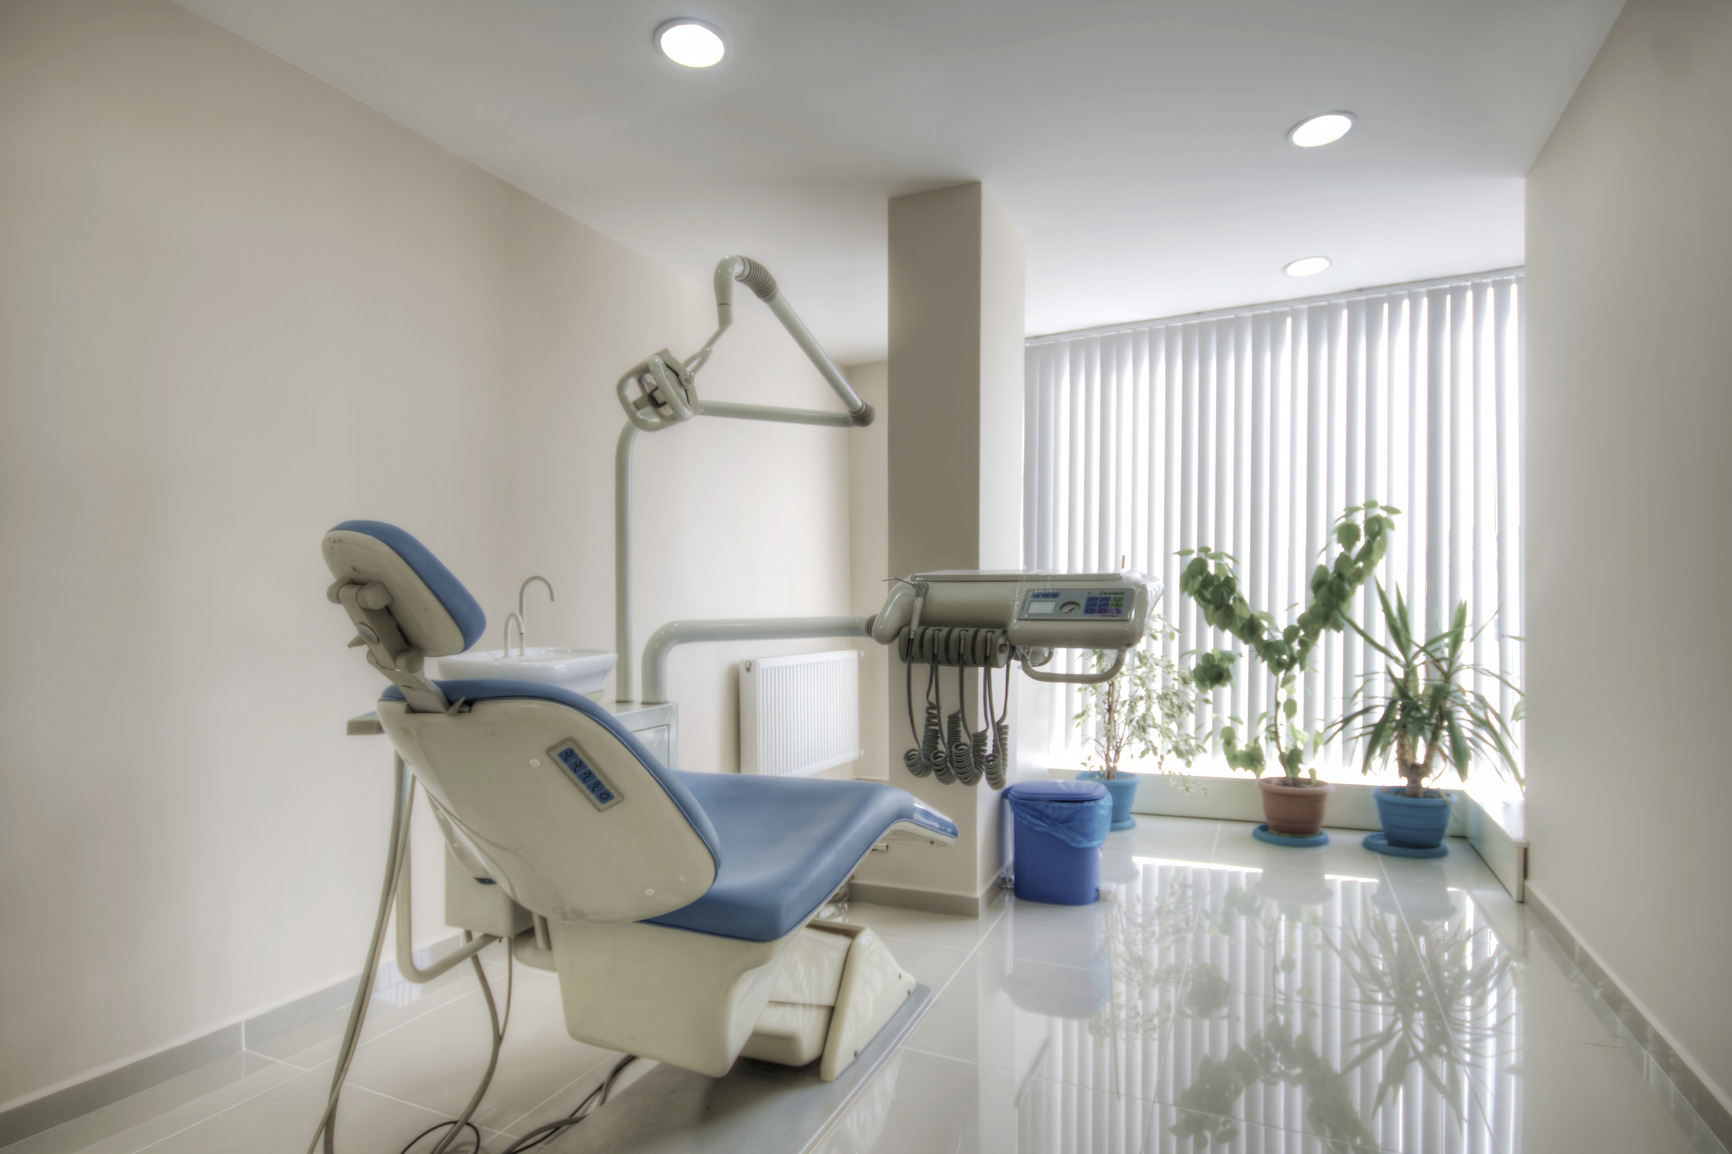 The Costs Of Dental Care